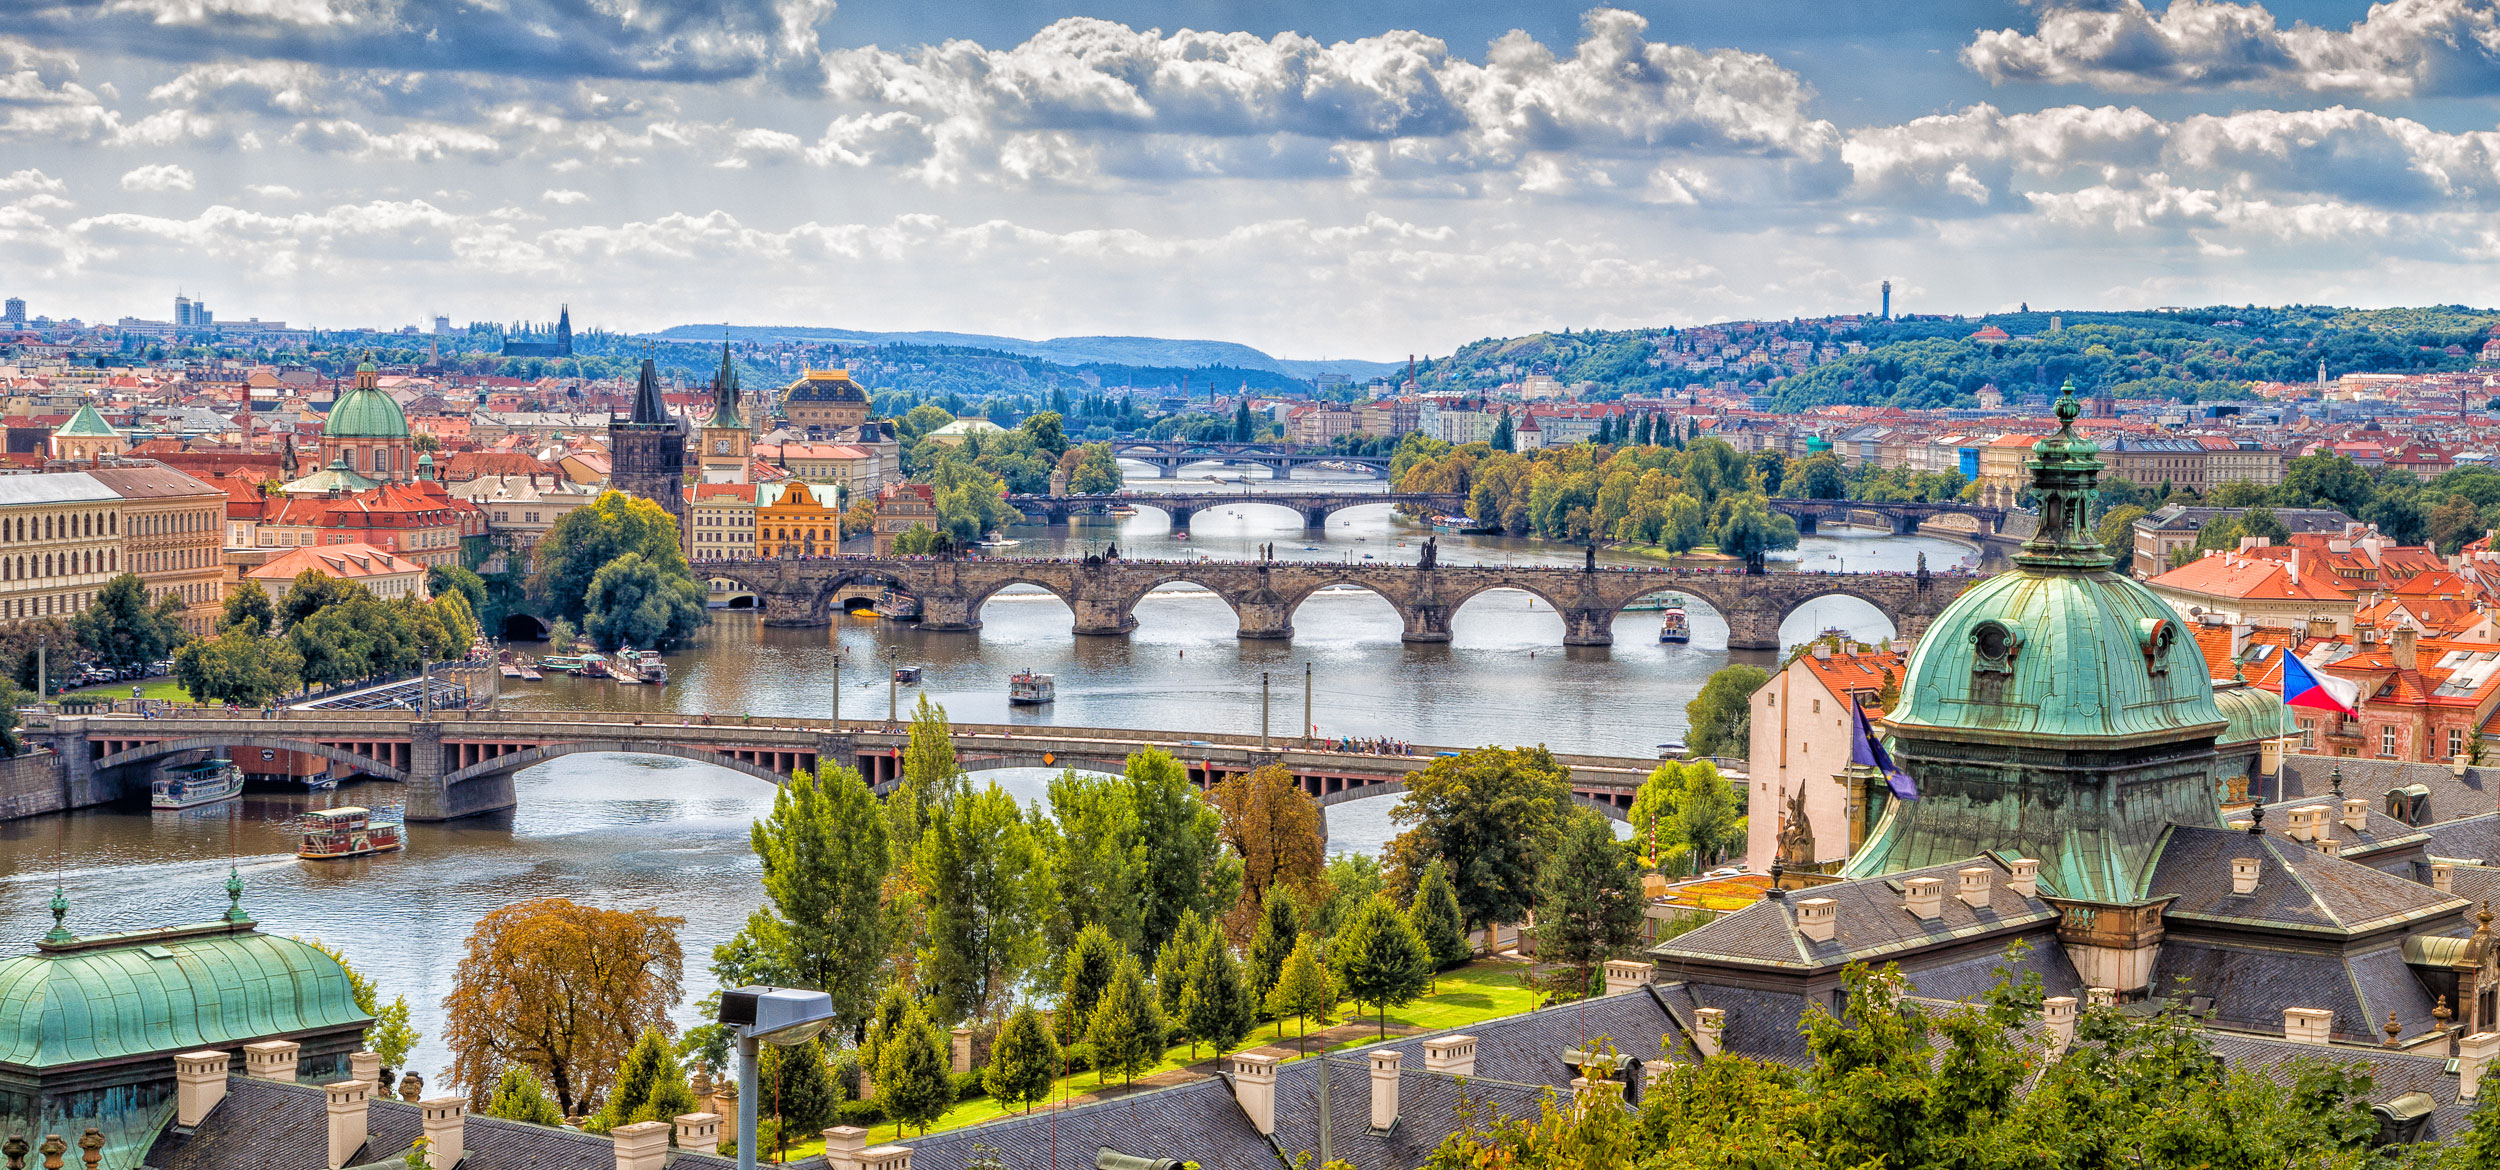 View of bridges on the Vltava river and the historical center of Prague, Czech Republic